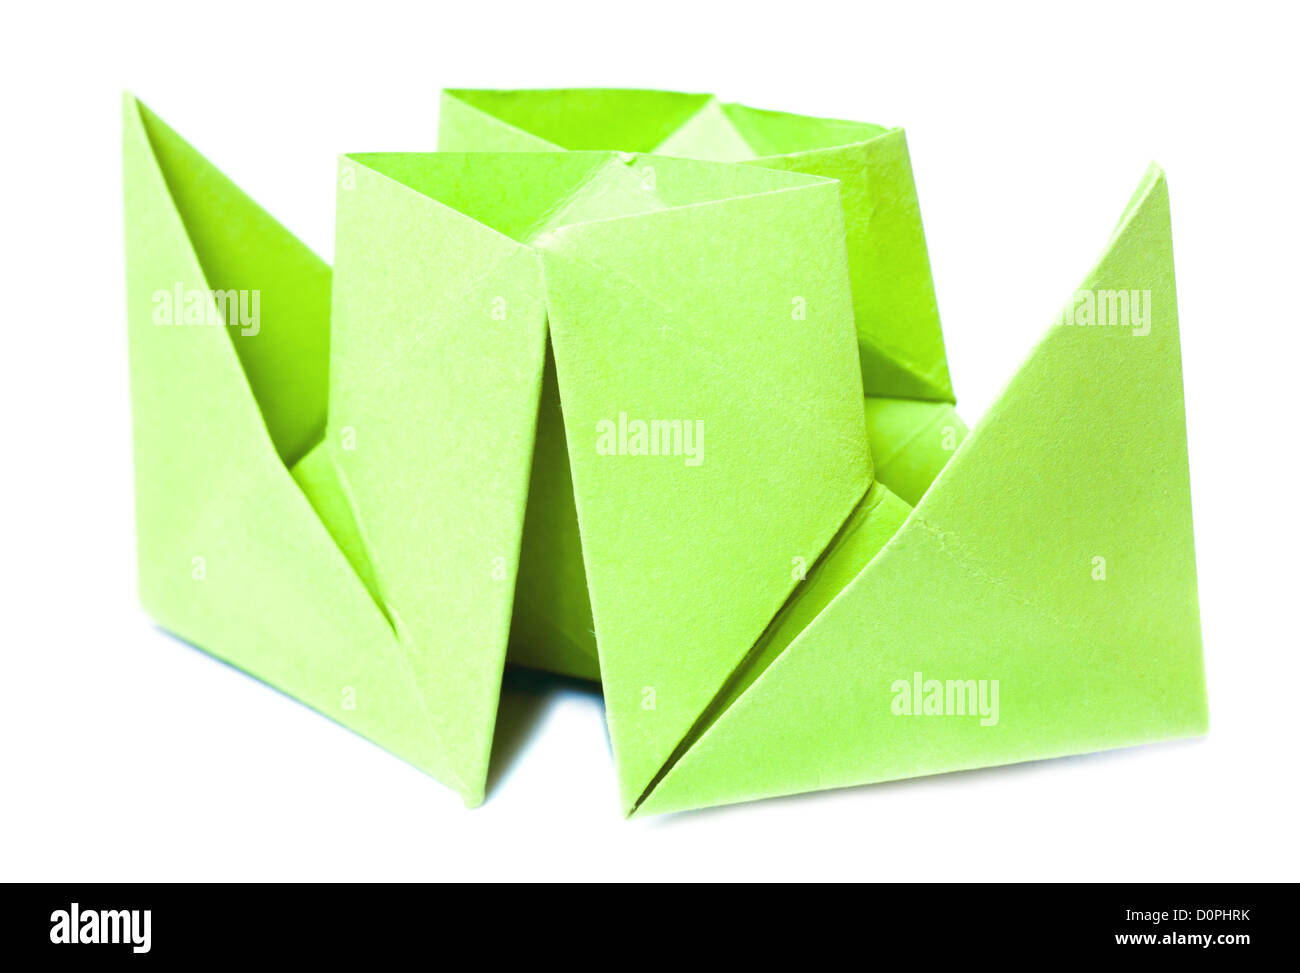 origami figure of boat - Stock Image